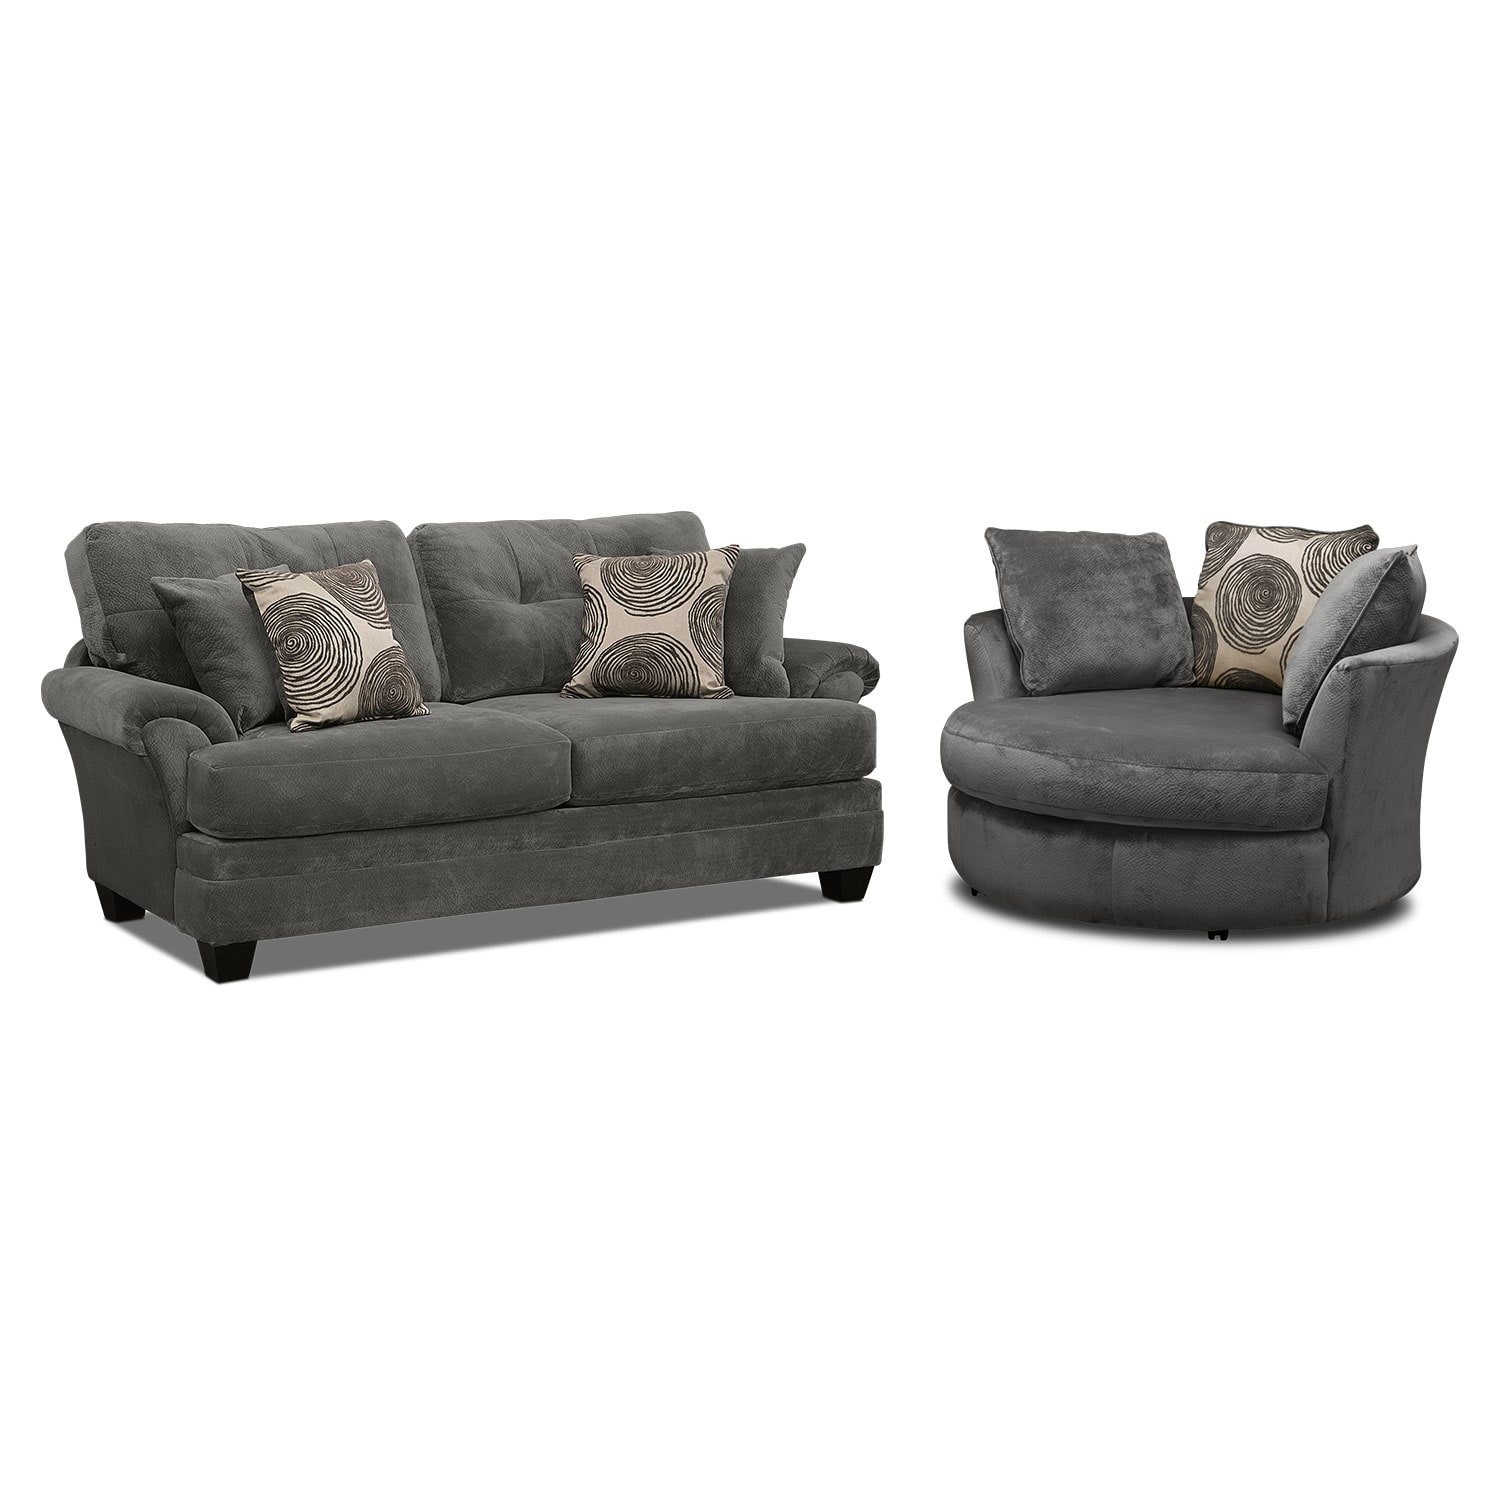 swivel chair sofa set risers cordelle and gray value city